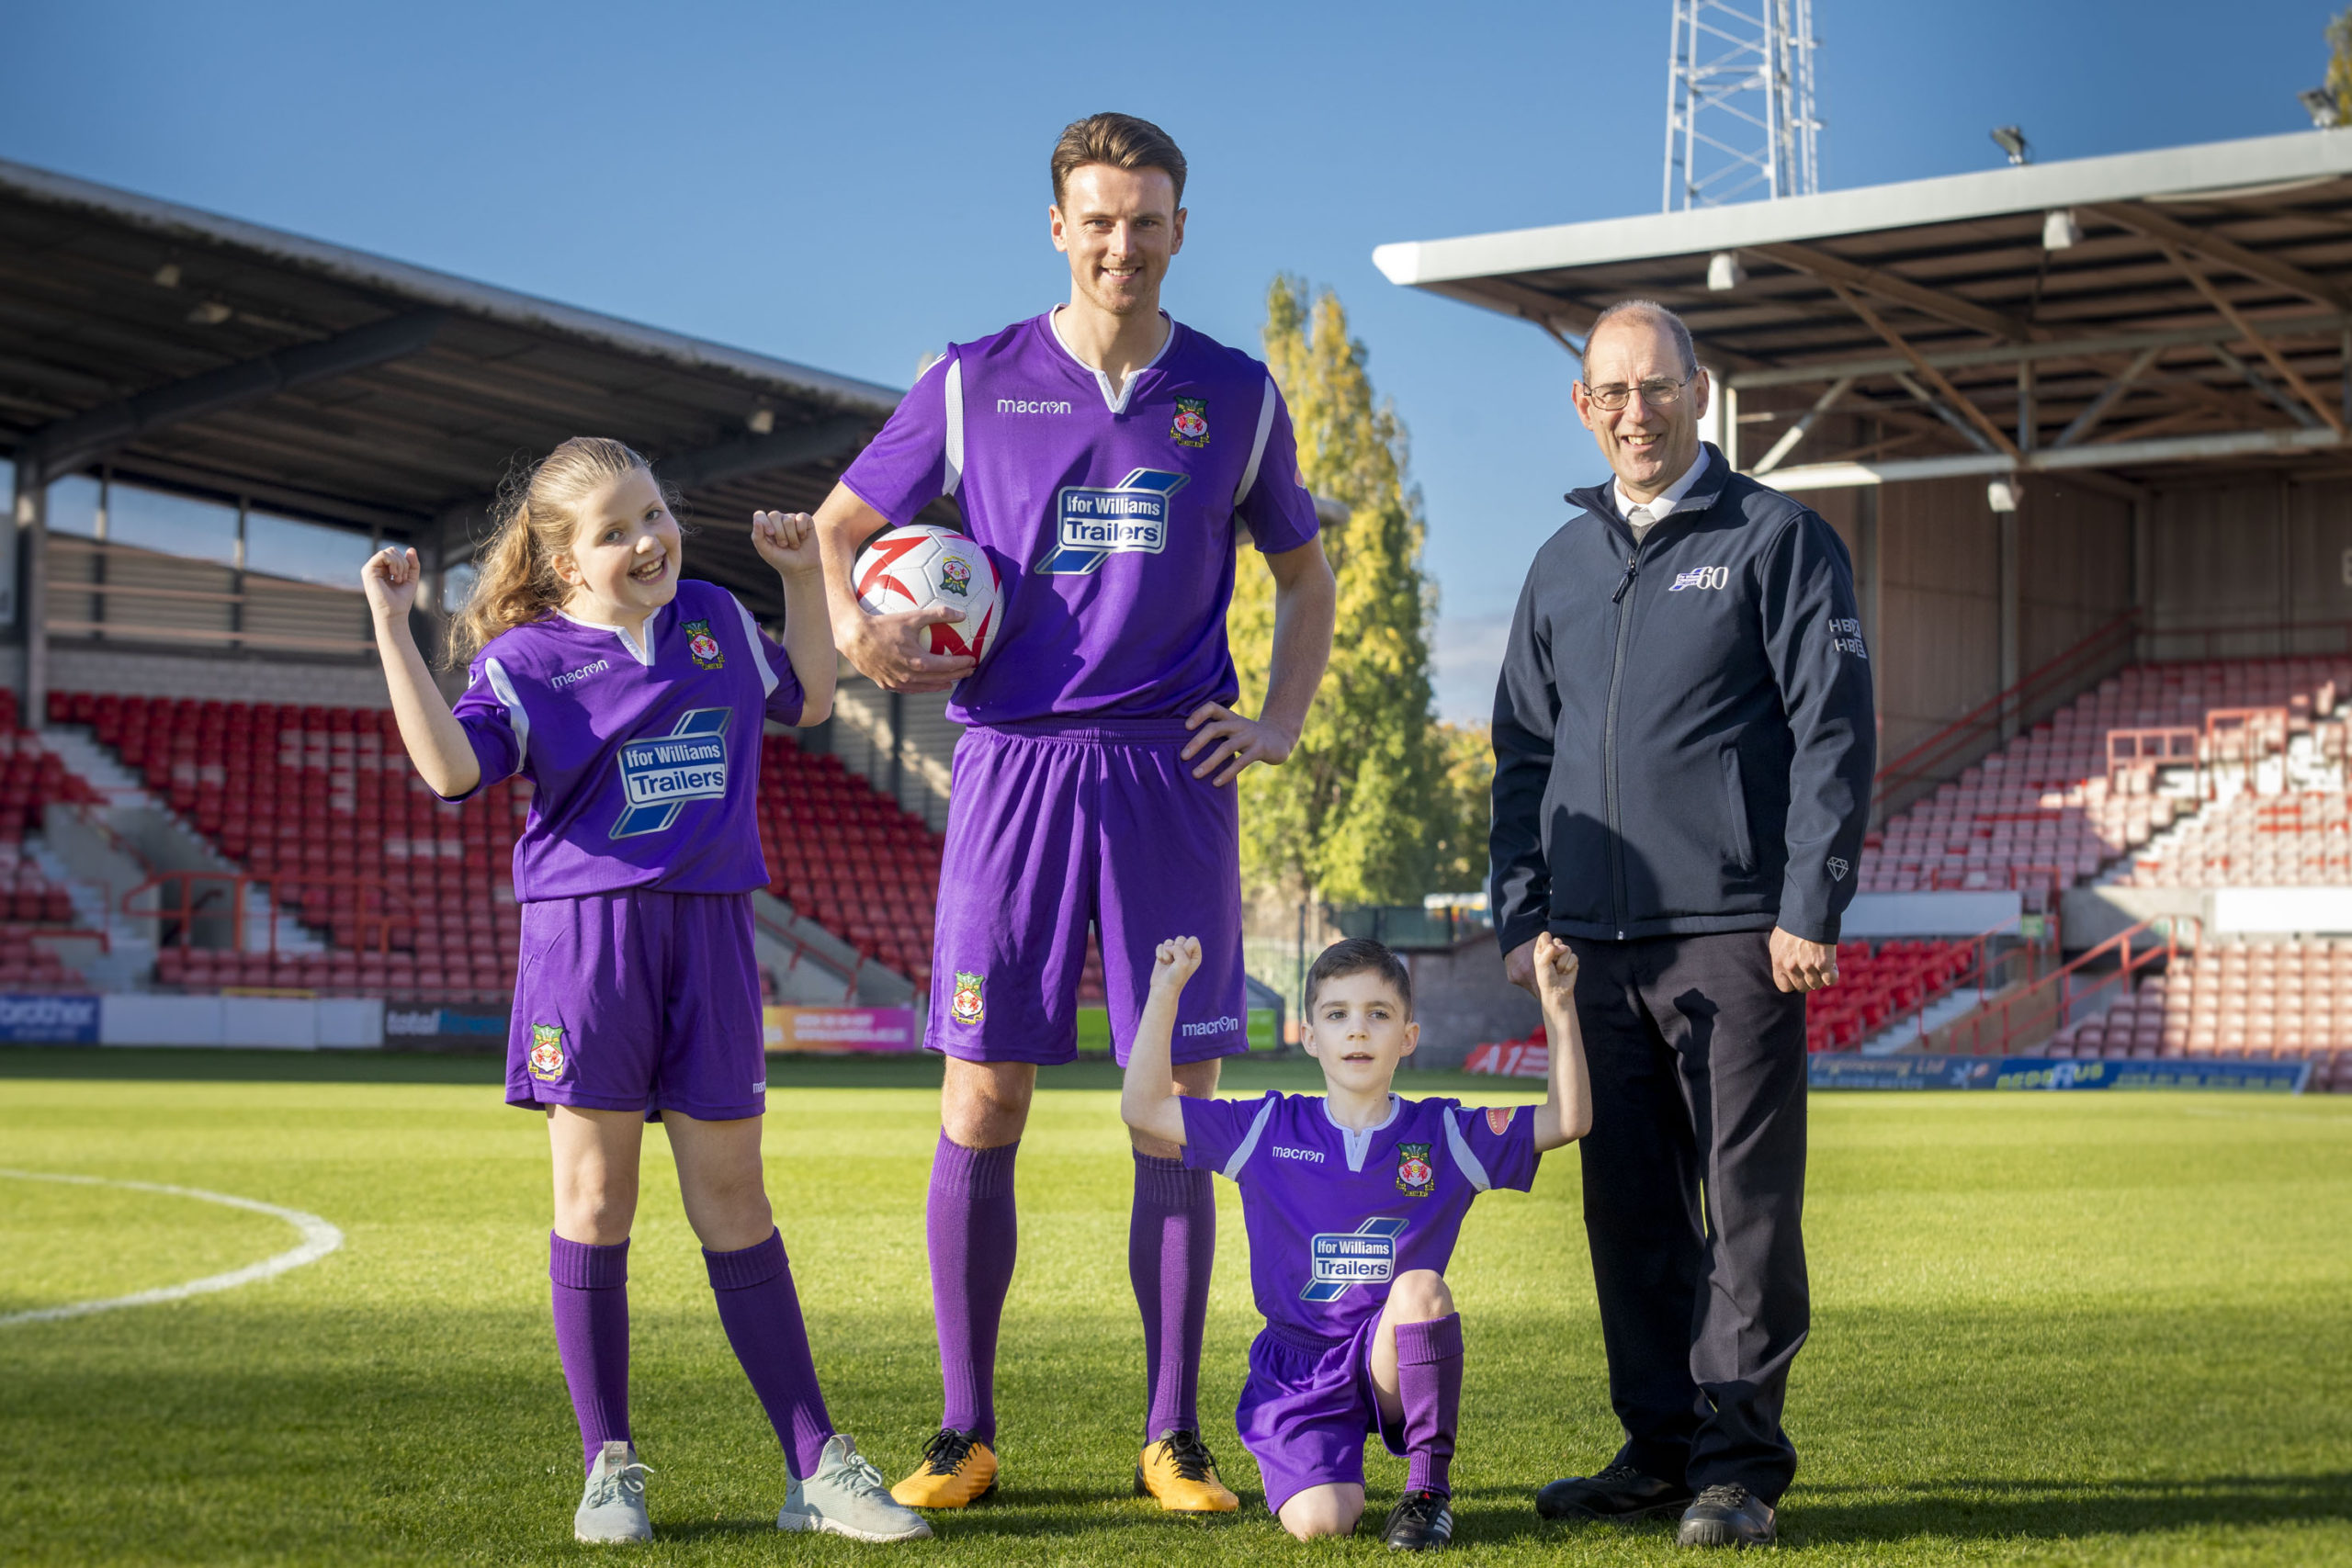 Wrexham fan Russell hopes for purple patch in form with new kit